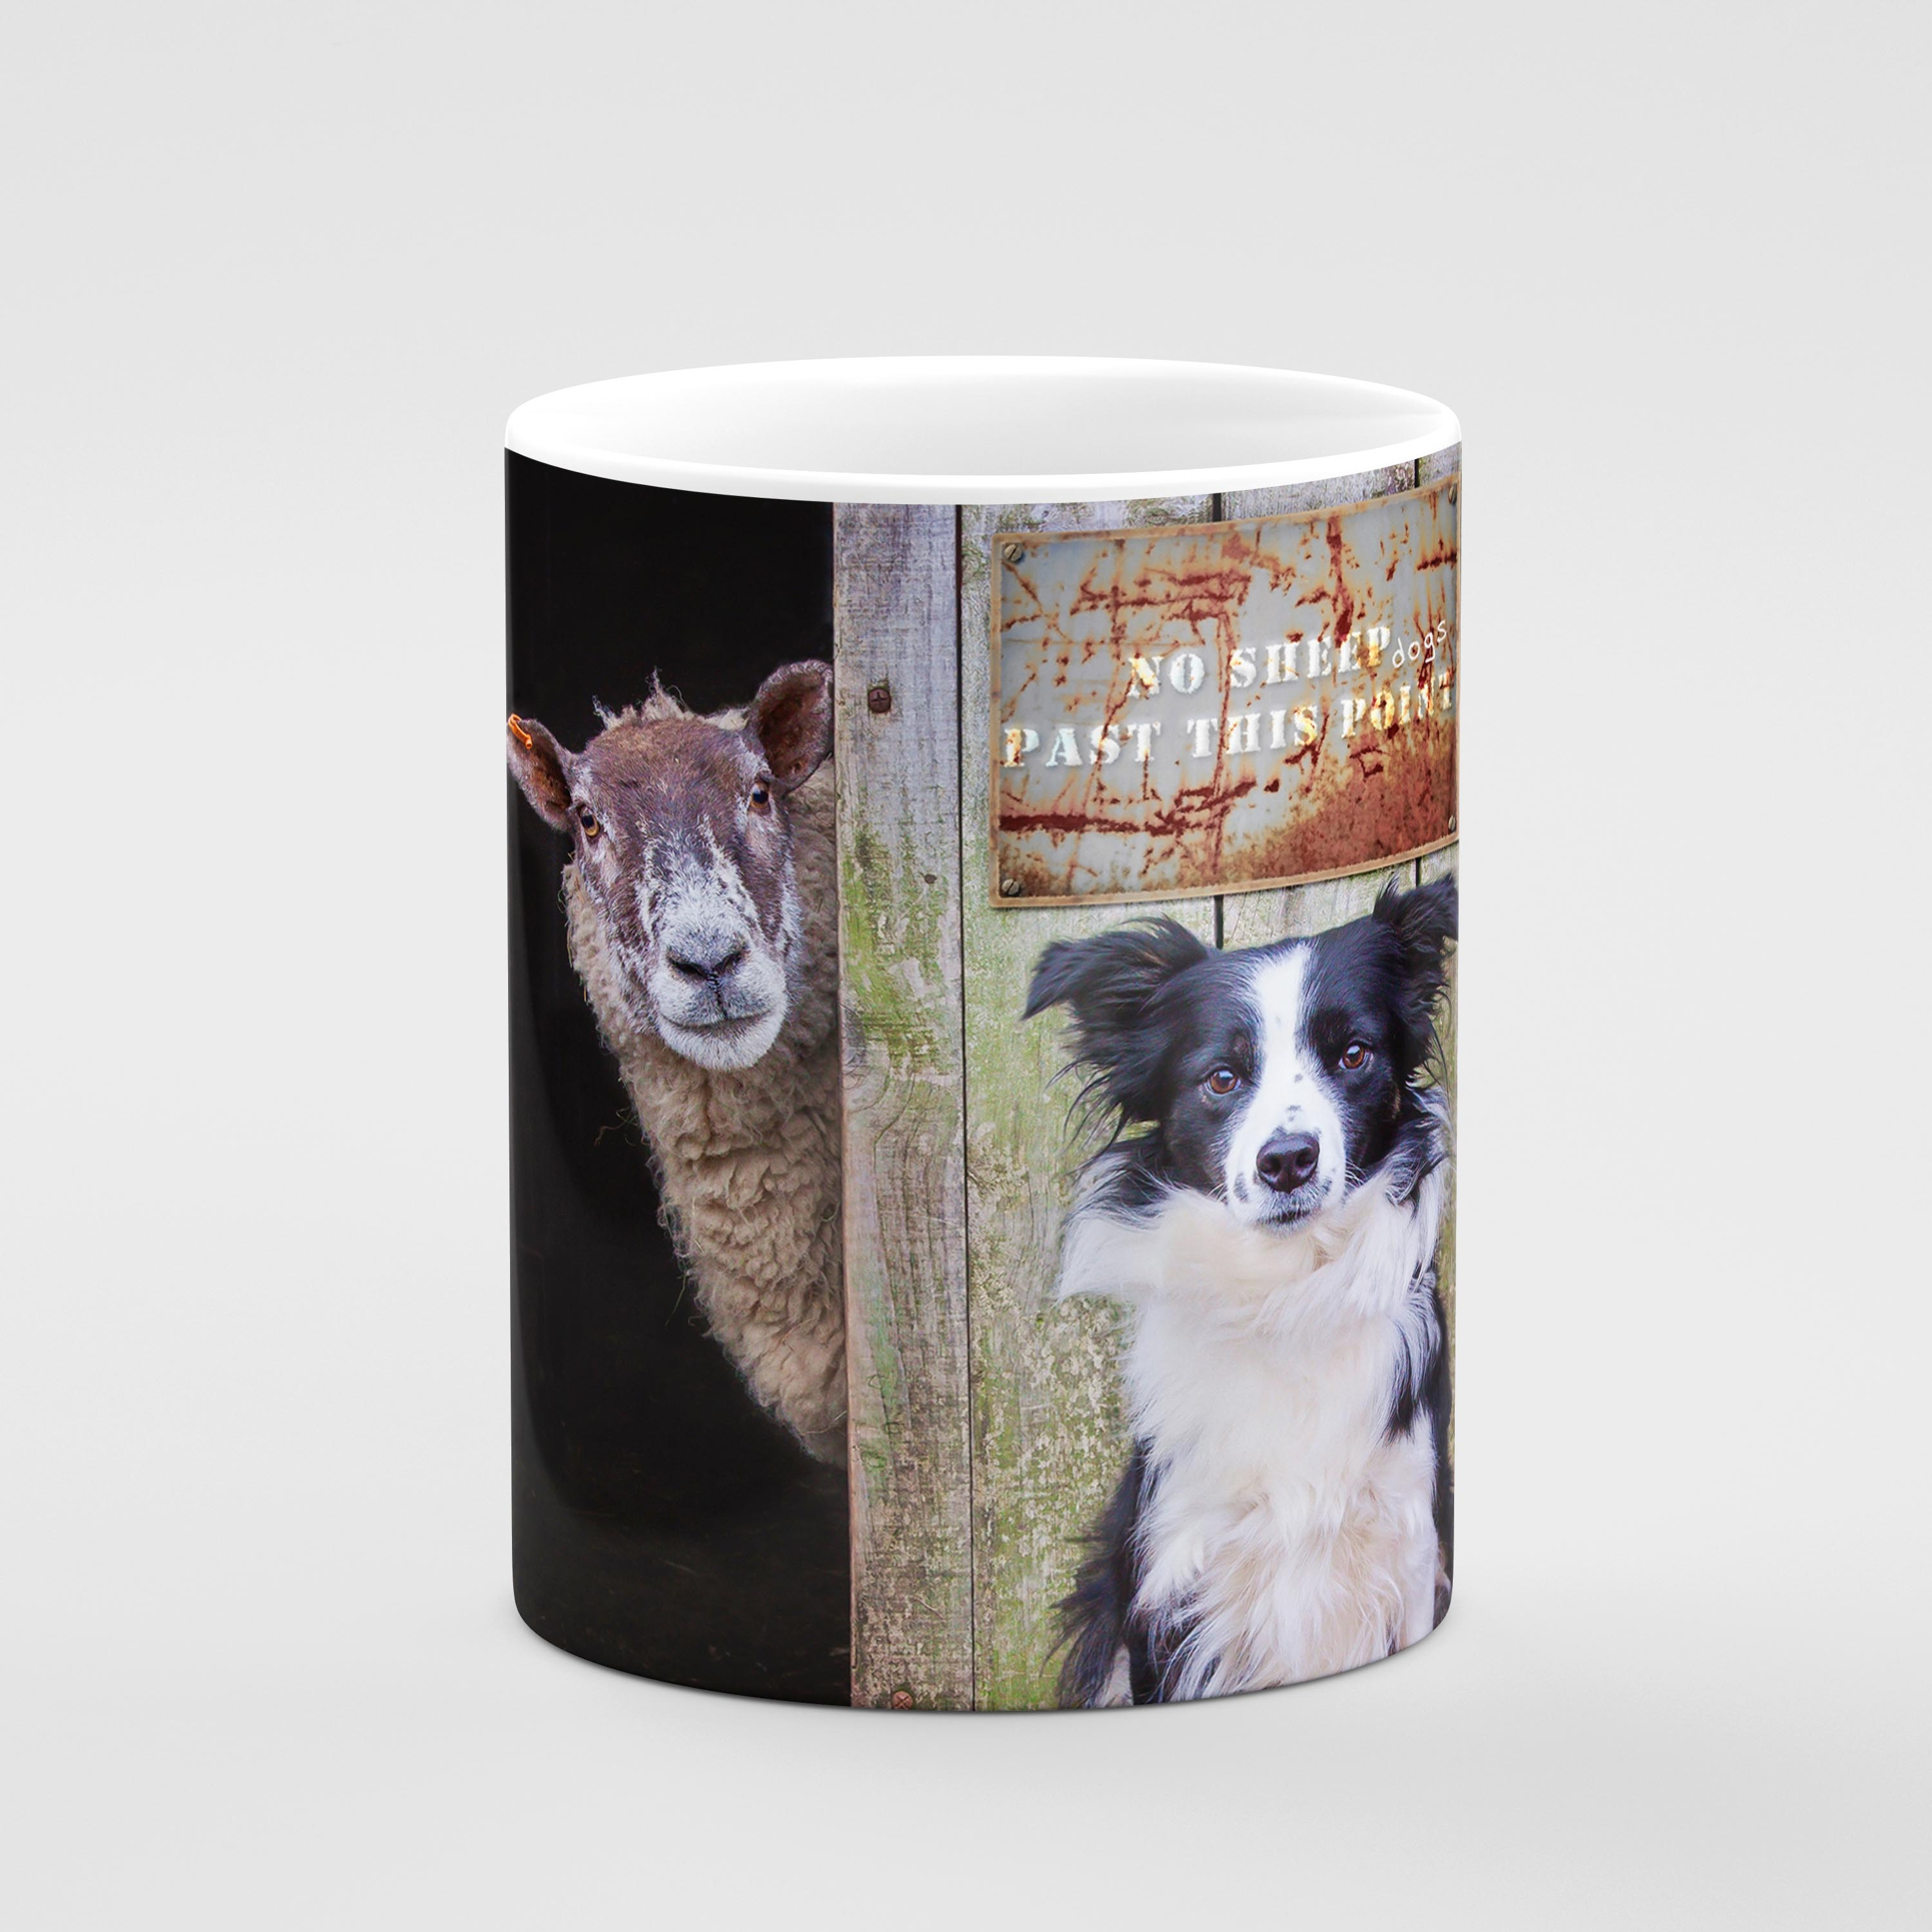 She's Behind Ewe - Border Collie and Sheep Drinks Coaster - Kitchy & Co